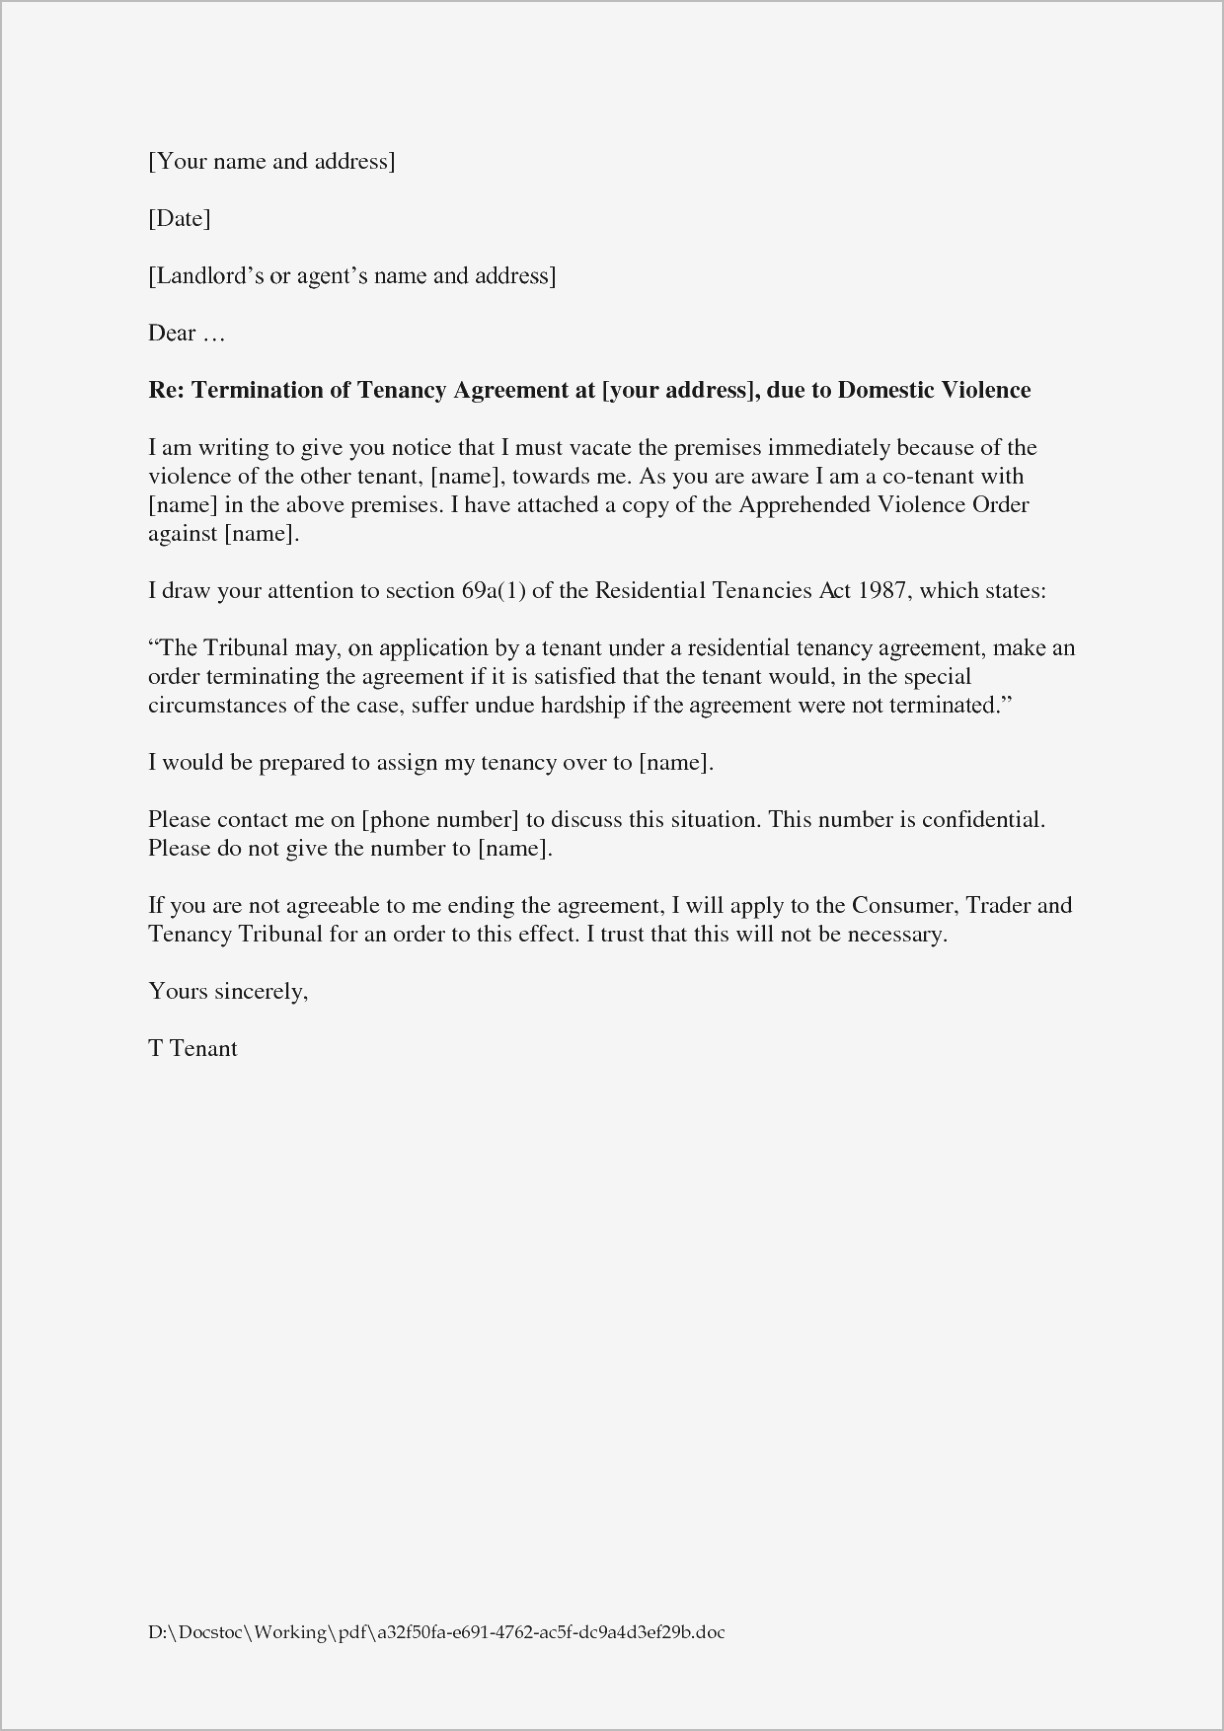 Termination Of Lease Agreement Notice Of Termination Lease Ment Rental Letter Sample From Landlord